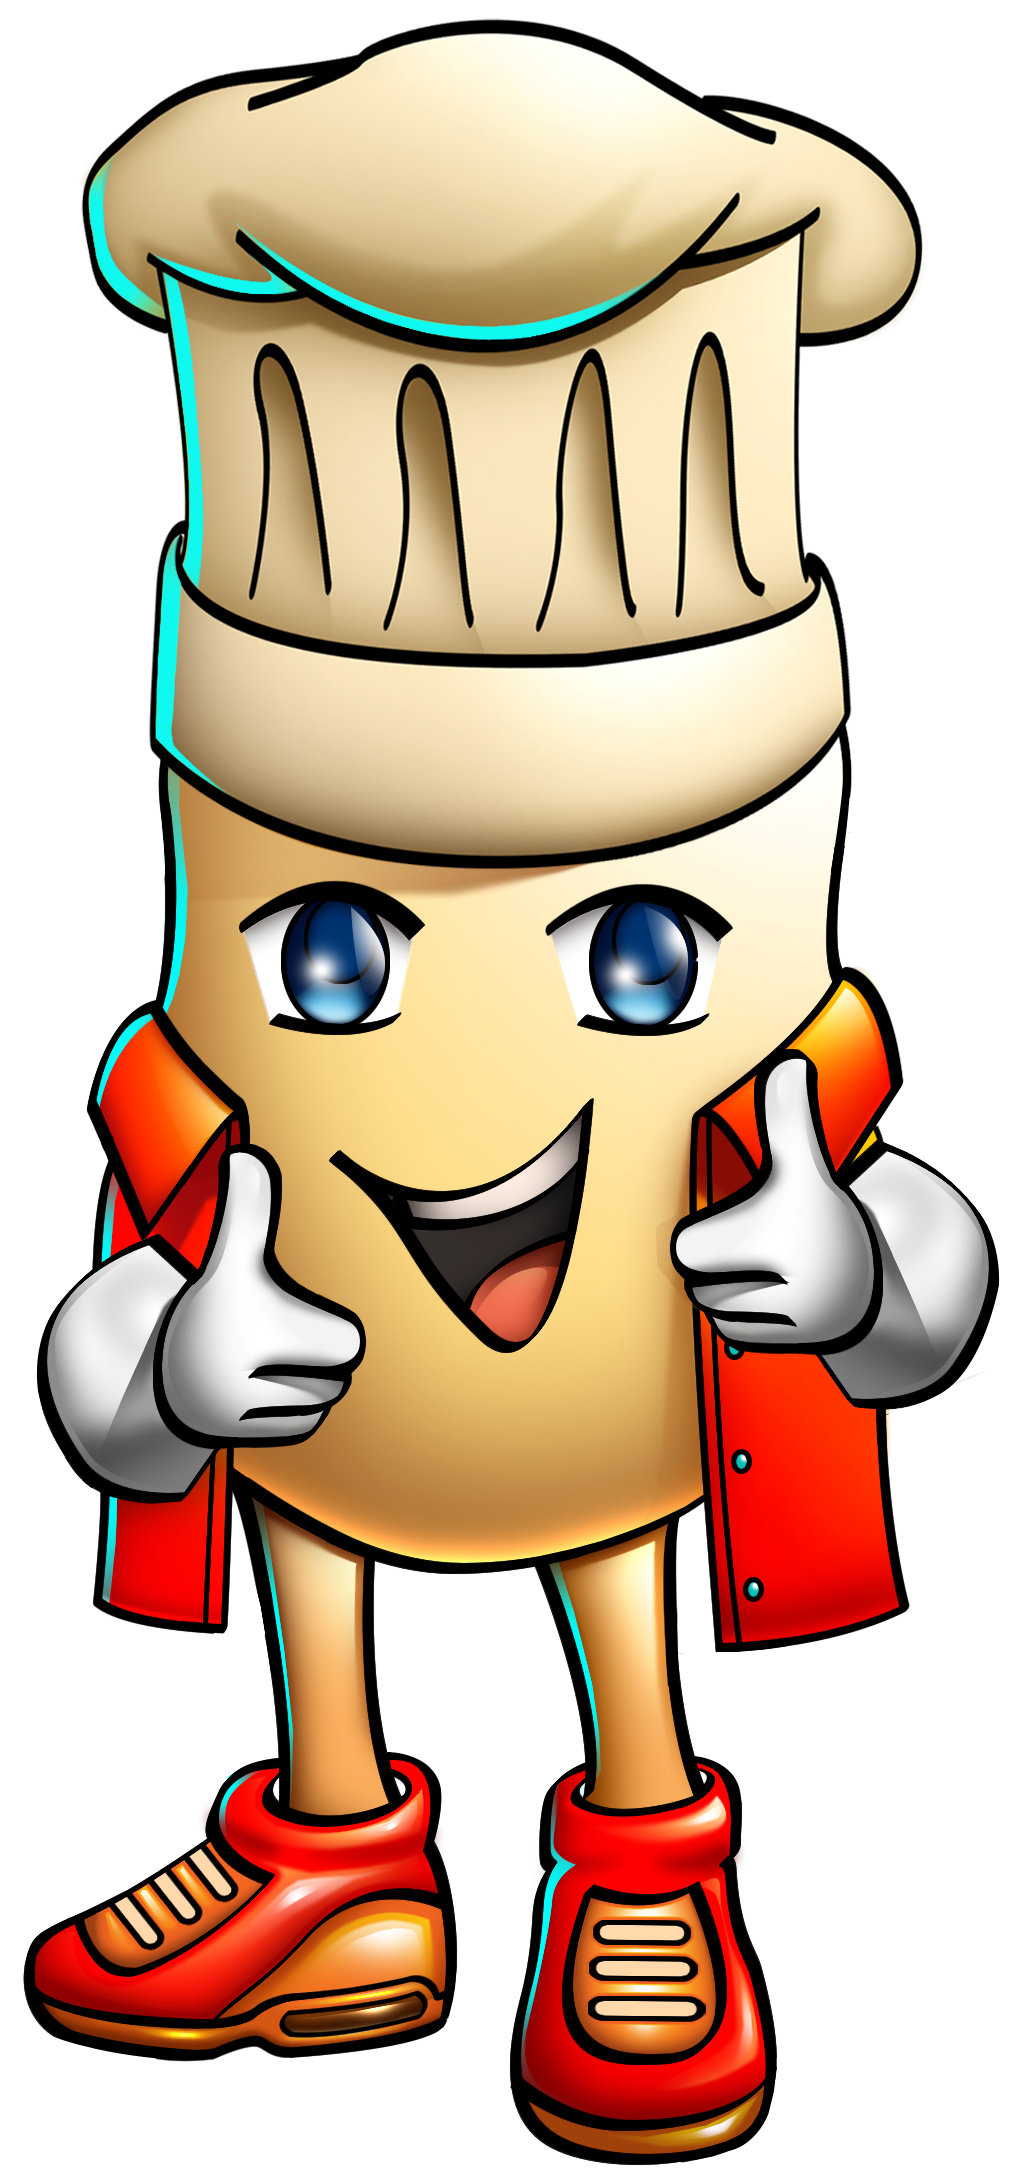 thumbs-up-trimmed-png.png